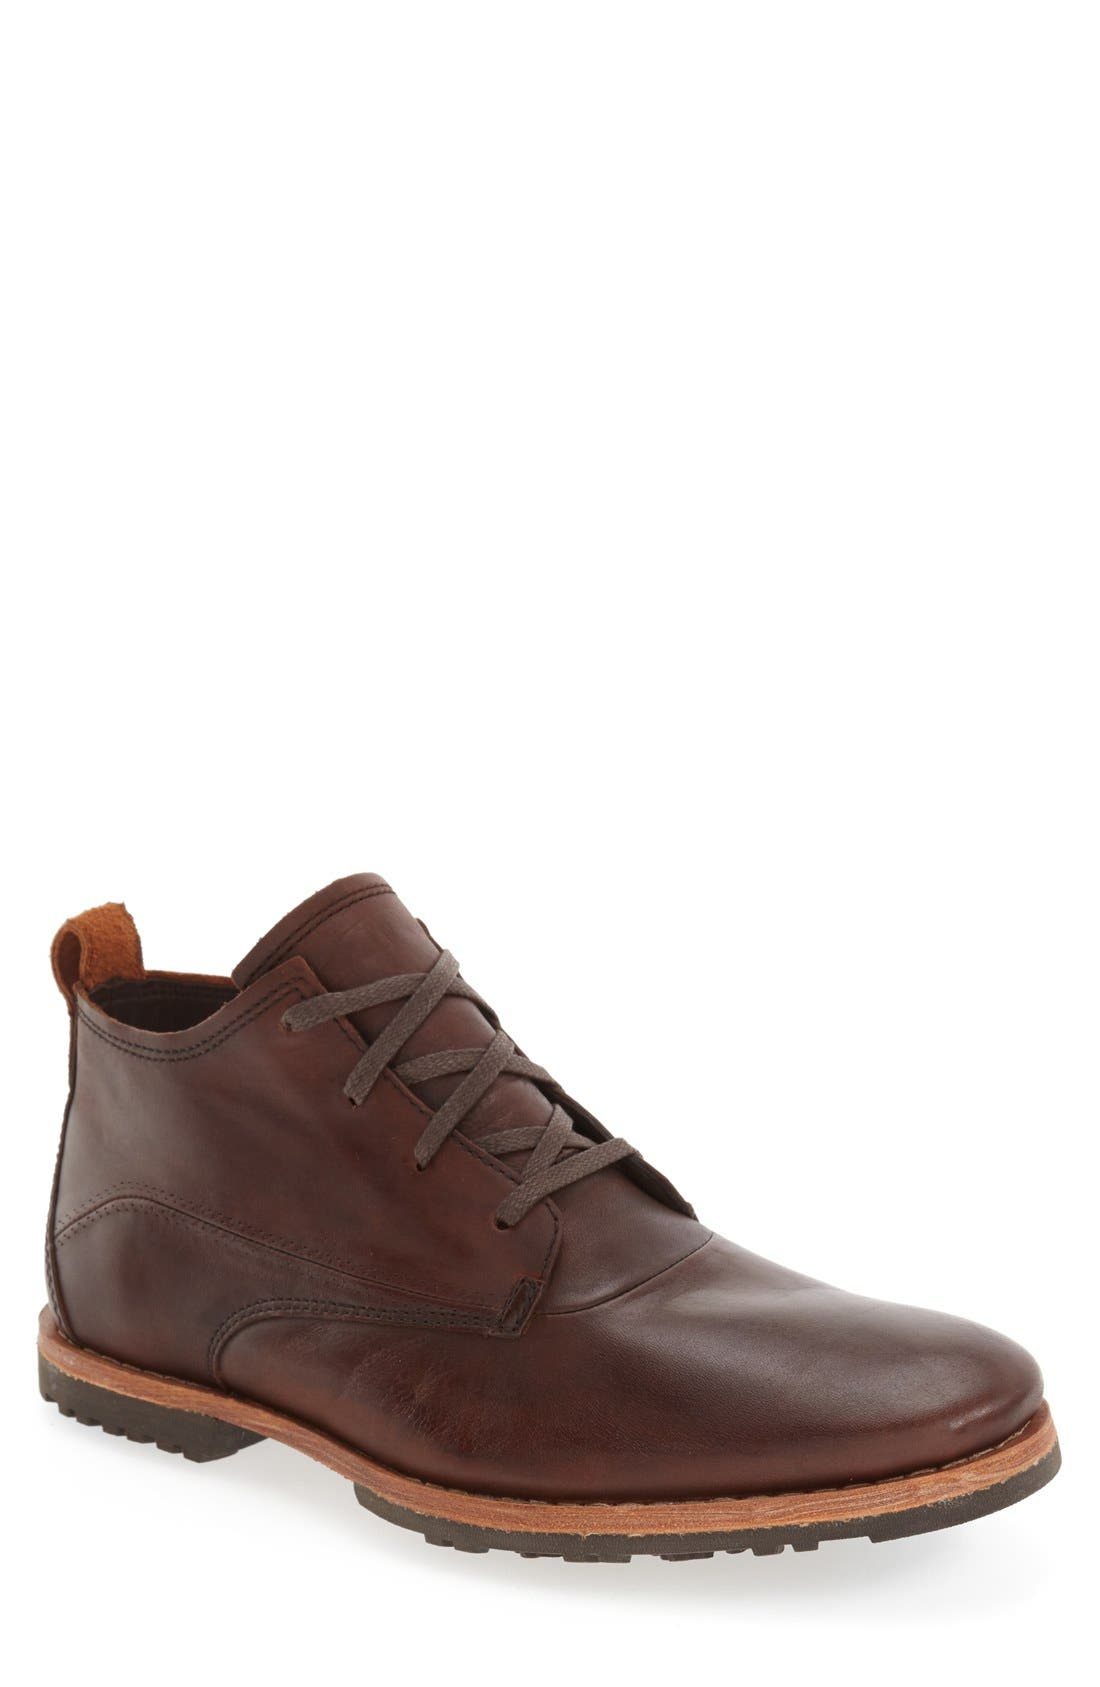 'Bardstown' Chukka Boot,                             Main thumbnail 5, color,